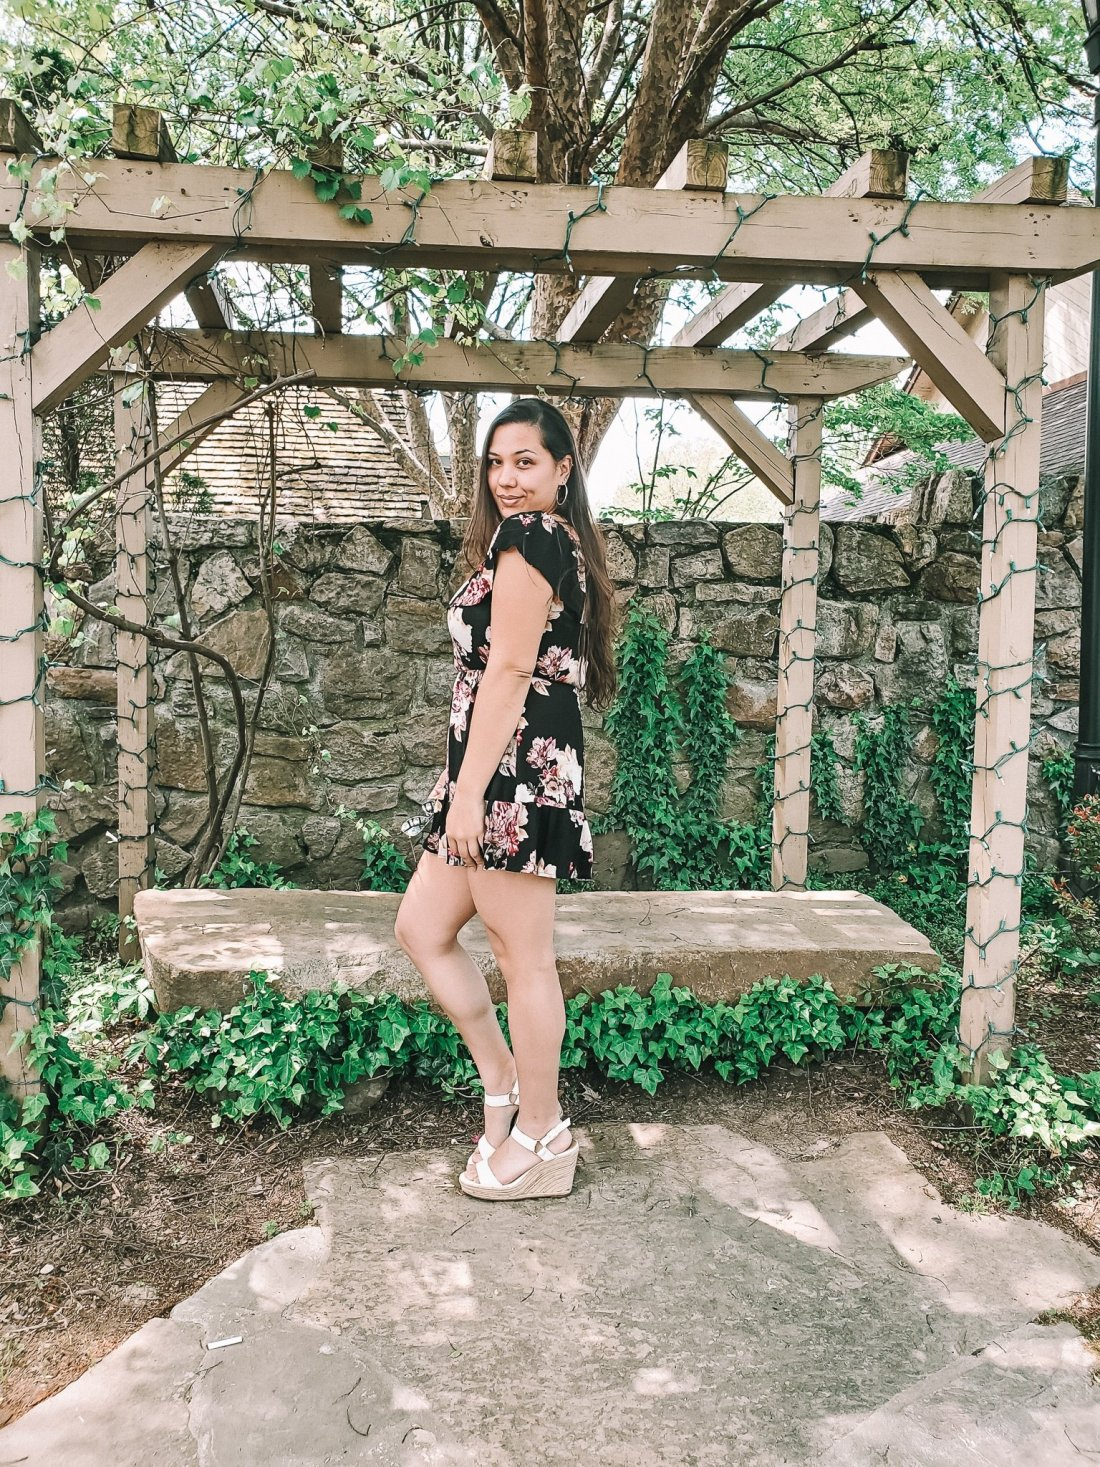 Jay's Style Black Booming Beauty Mini Dress. Jay shares her latest style for the season. Follow along as Jay shares all the fun and interesting outfits she loves in her newest blog feature Jay's Style.